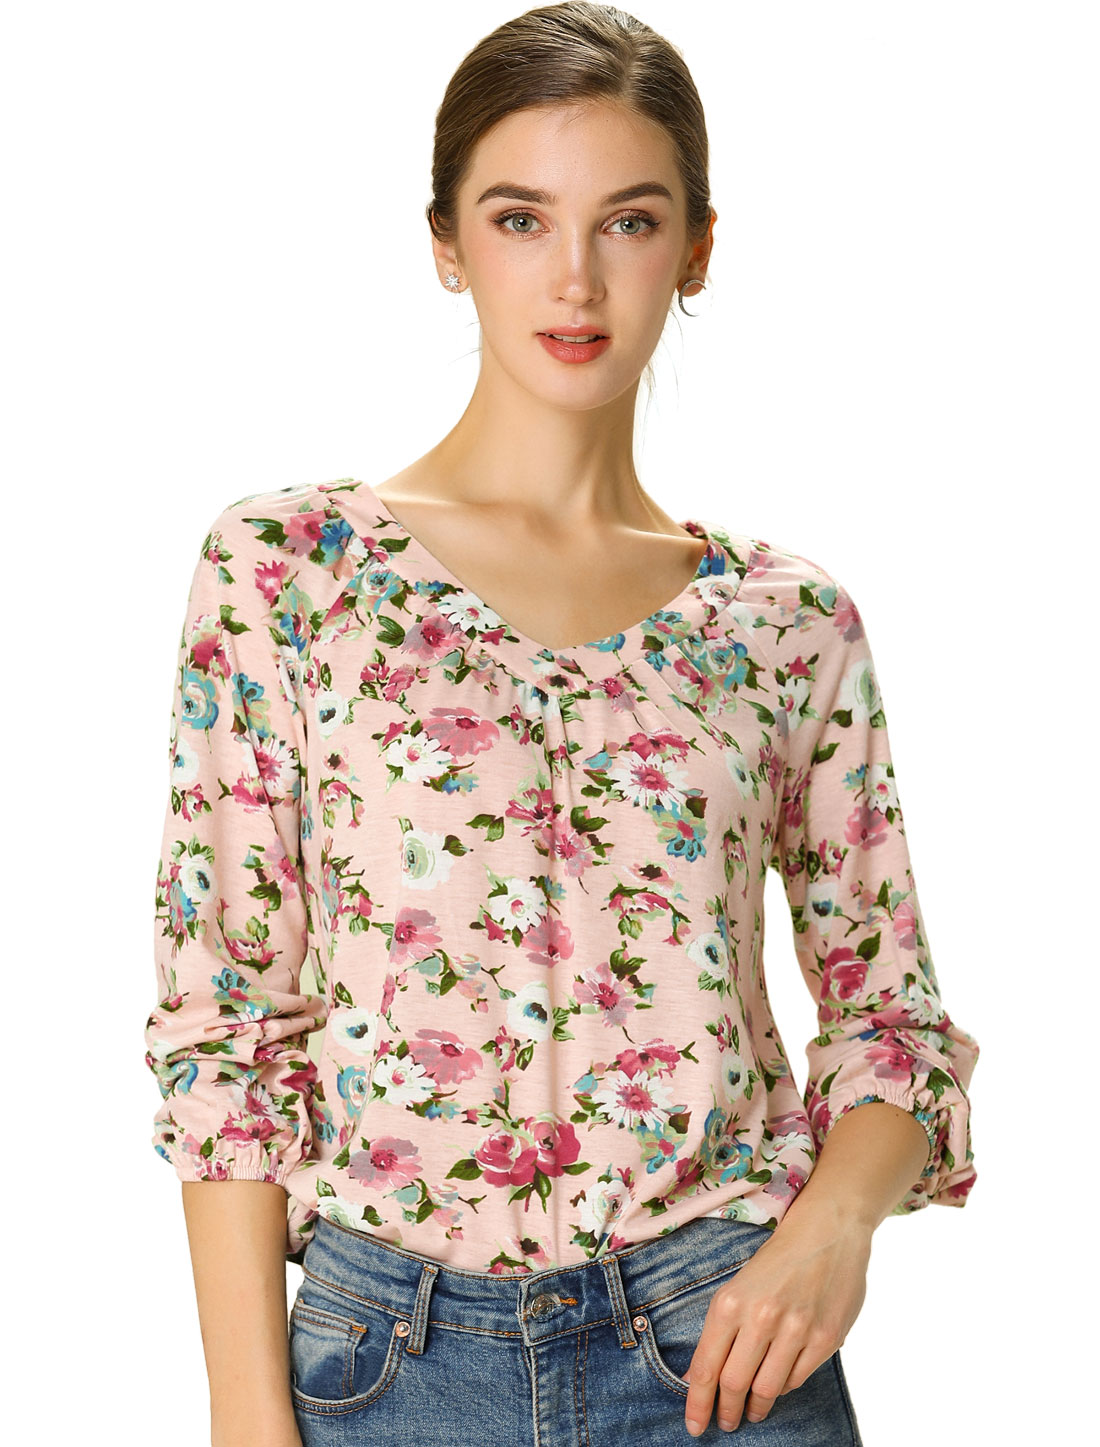 Women's Shirt 3/4 Sleeve Casual Loose V Neck Floral Blouse Top Pink M